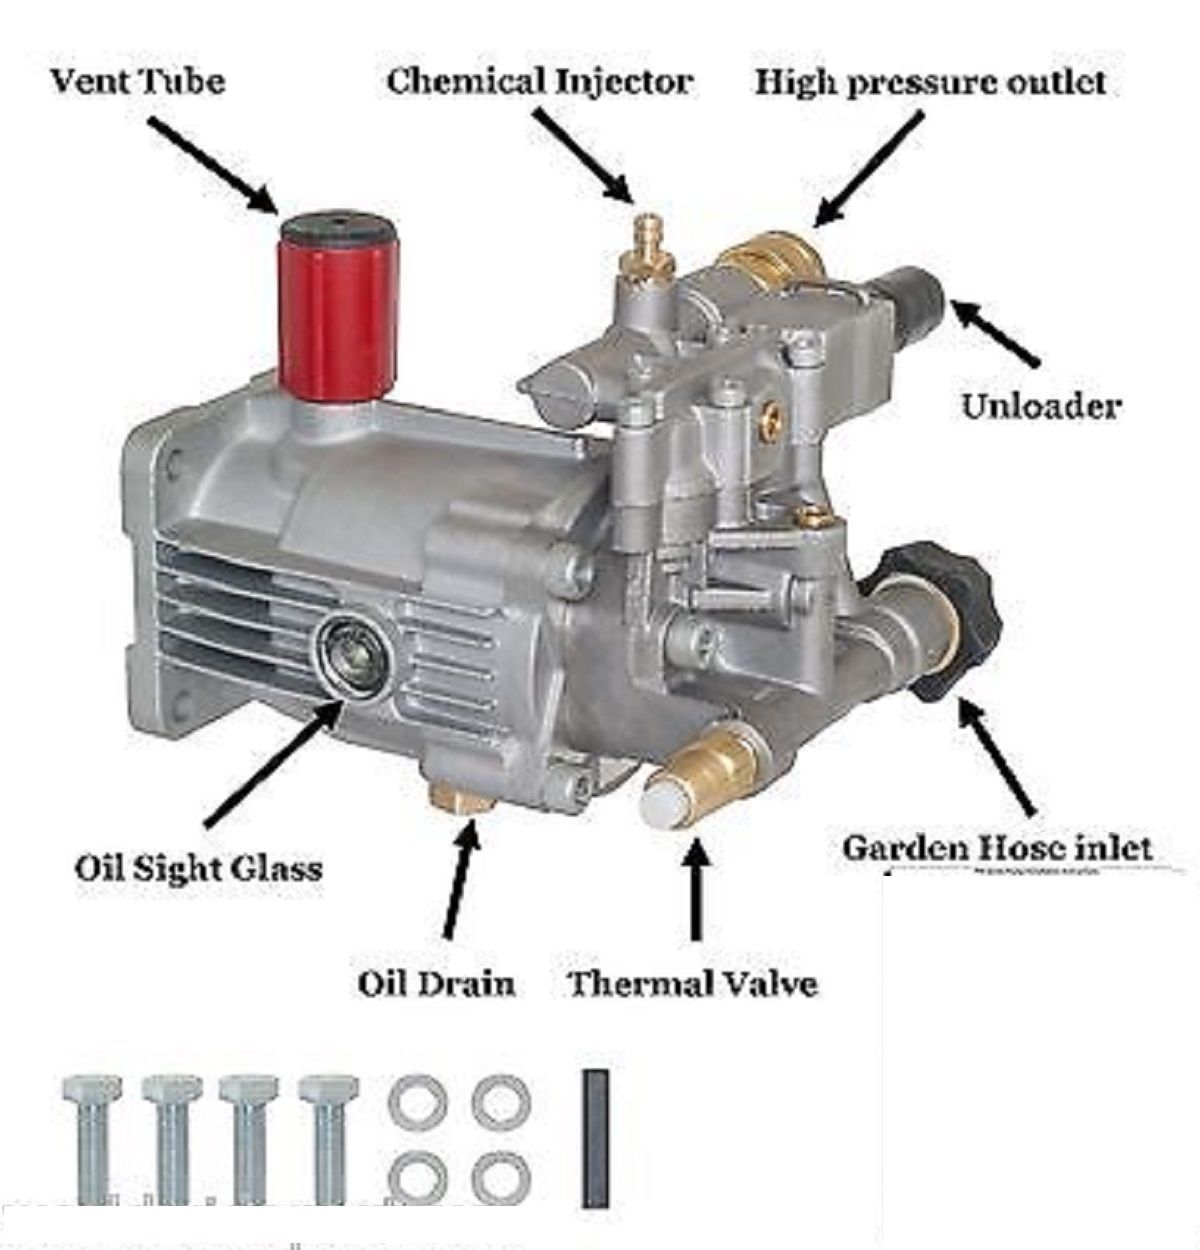 Pressure Washer Pump Fits Honda Excell Review Washer Pump Best Pressure Washer Pressure Washer